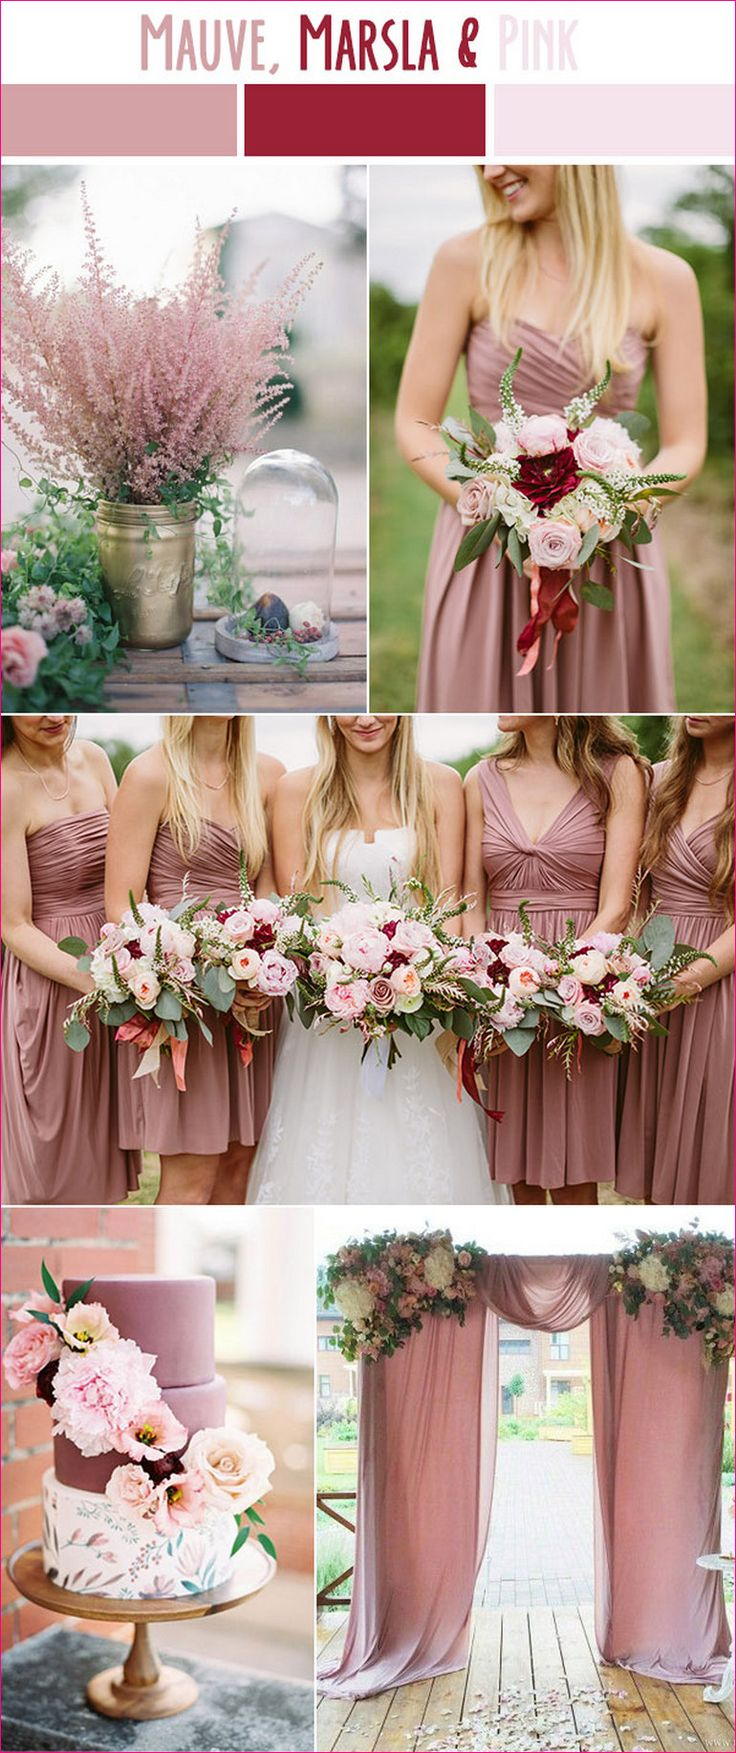 how to choose wedding colors